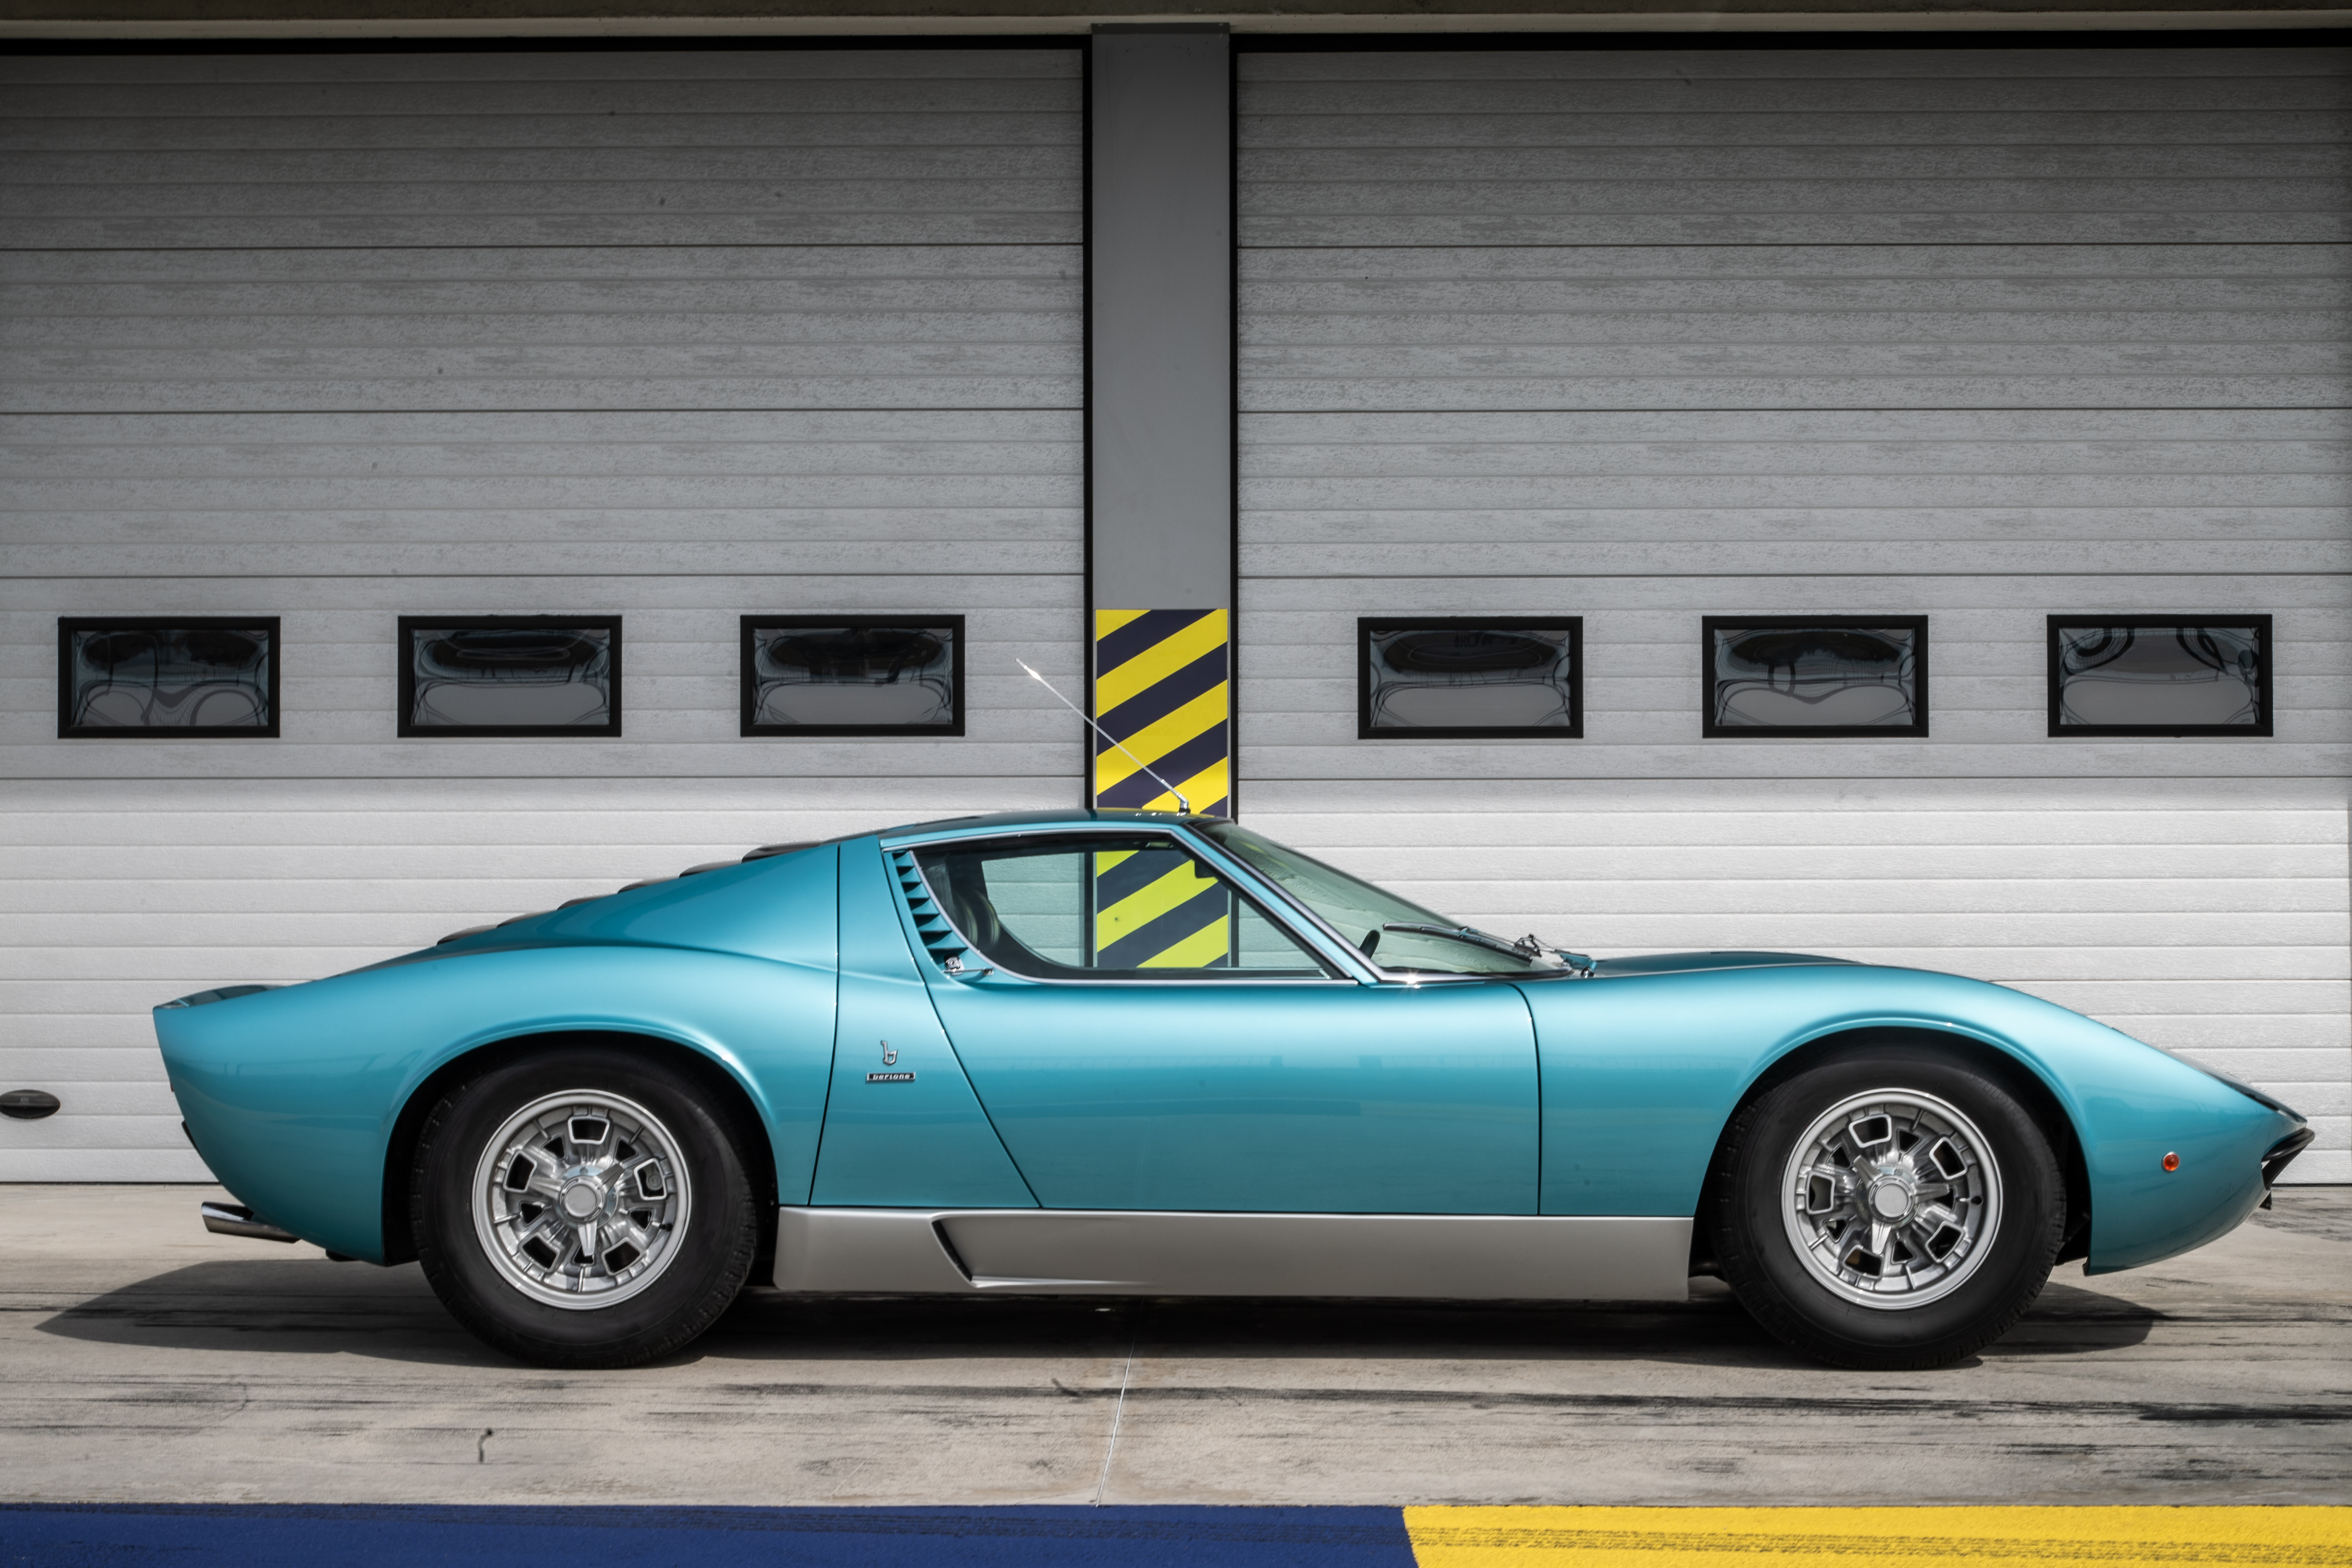 The Miura is arguably one of the prettiest cars of all time